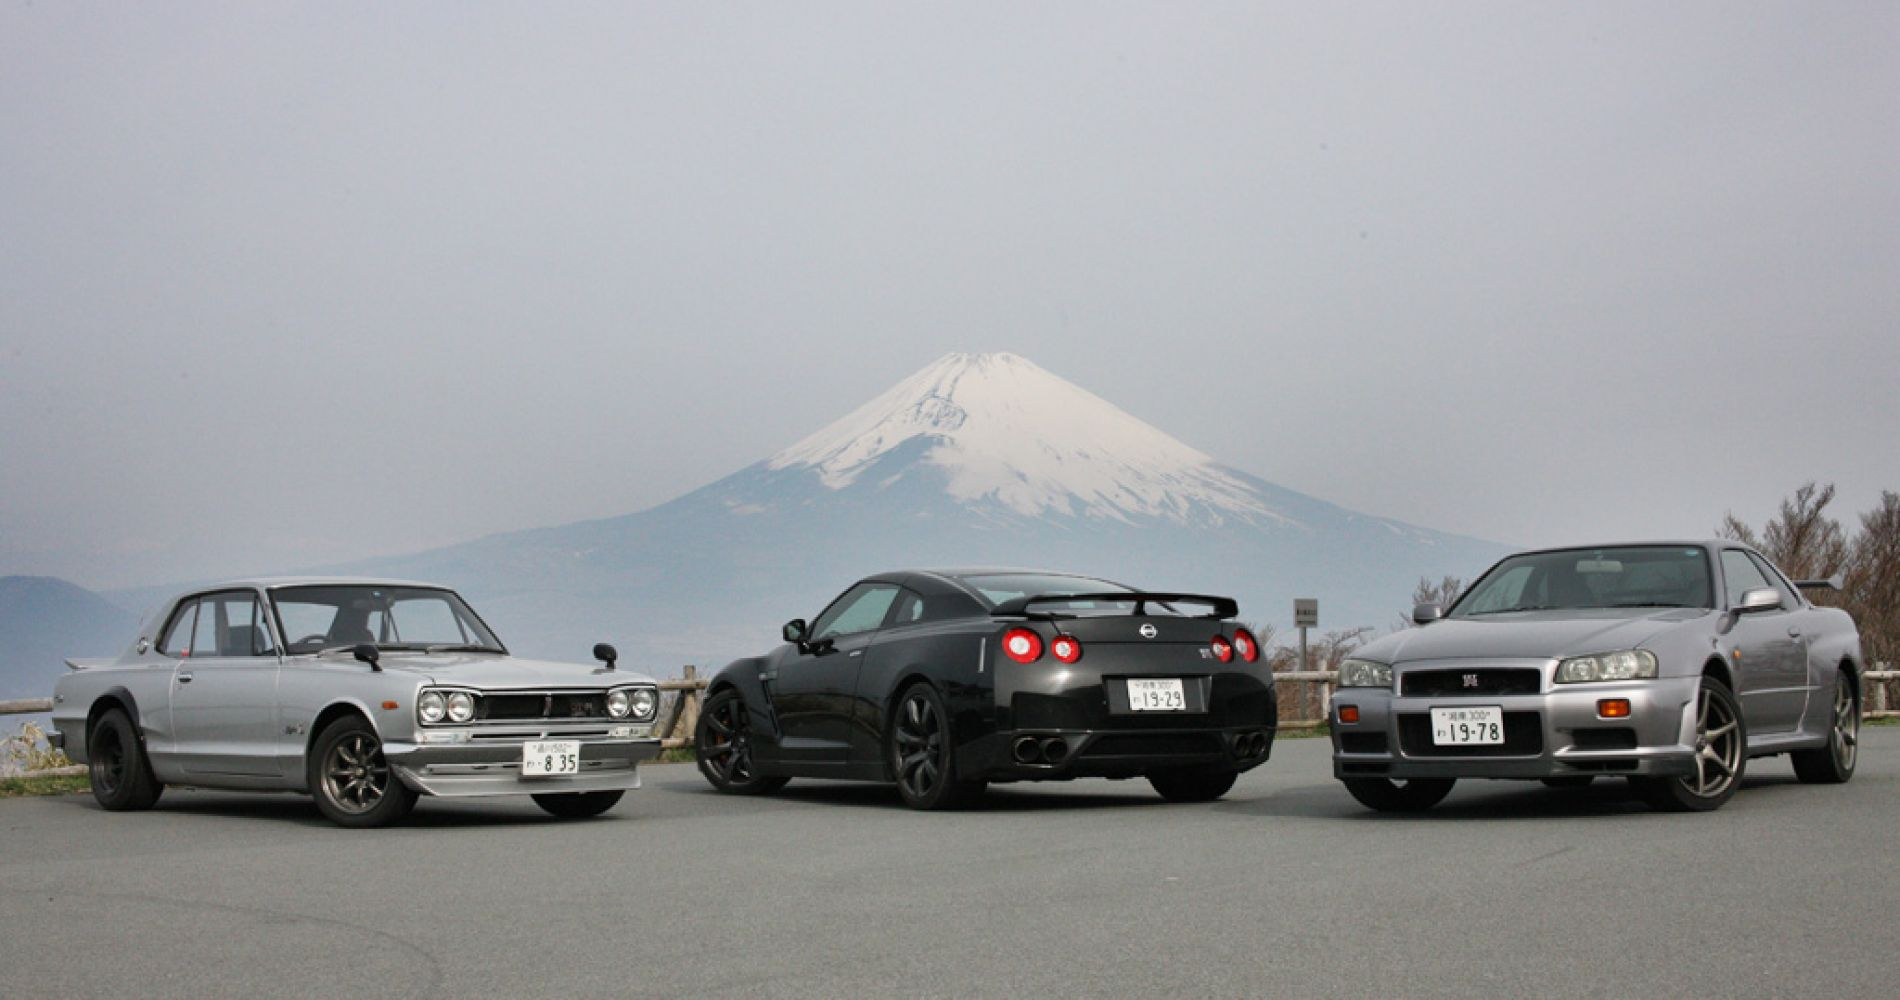 Ultimate Hakone Drive with Nissan in Japan